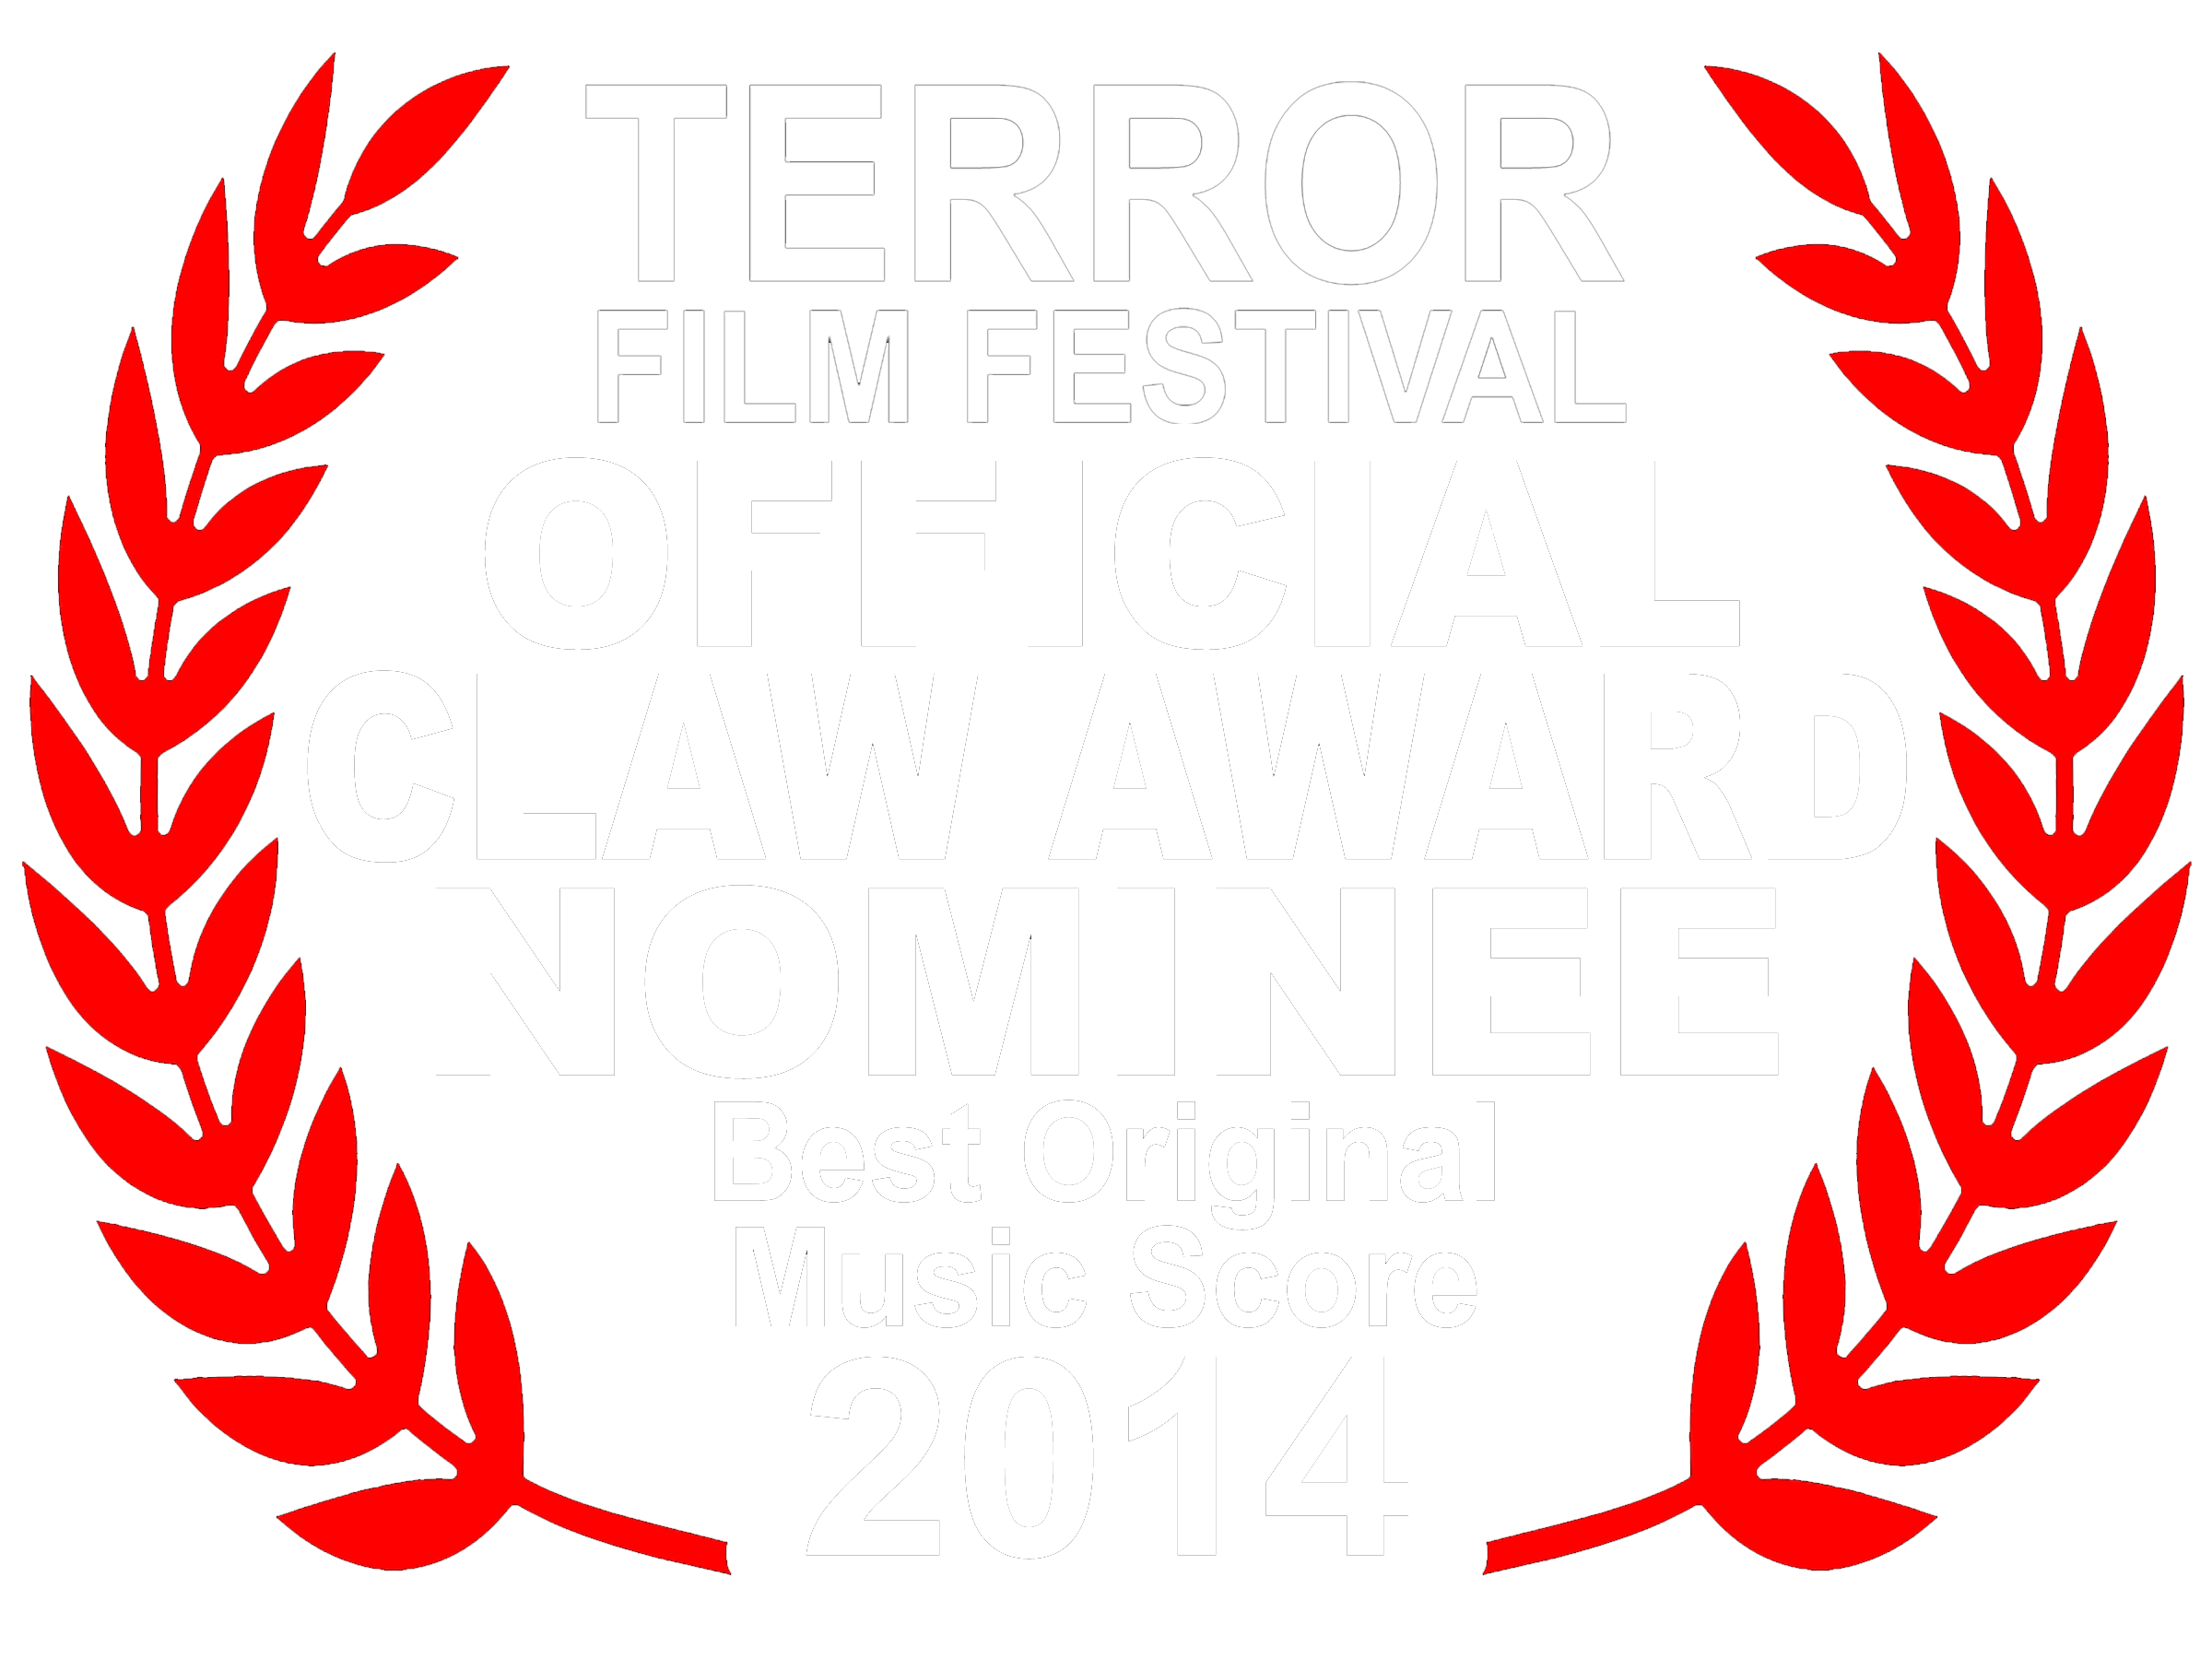 TerrorFilmFestival2014 Nominee Music Final.png